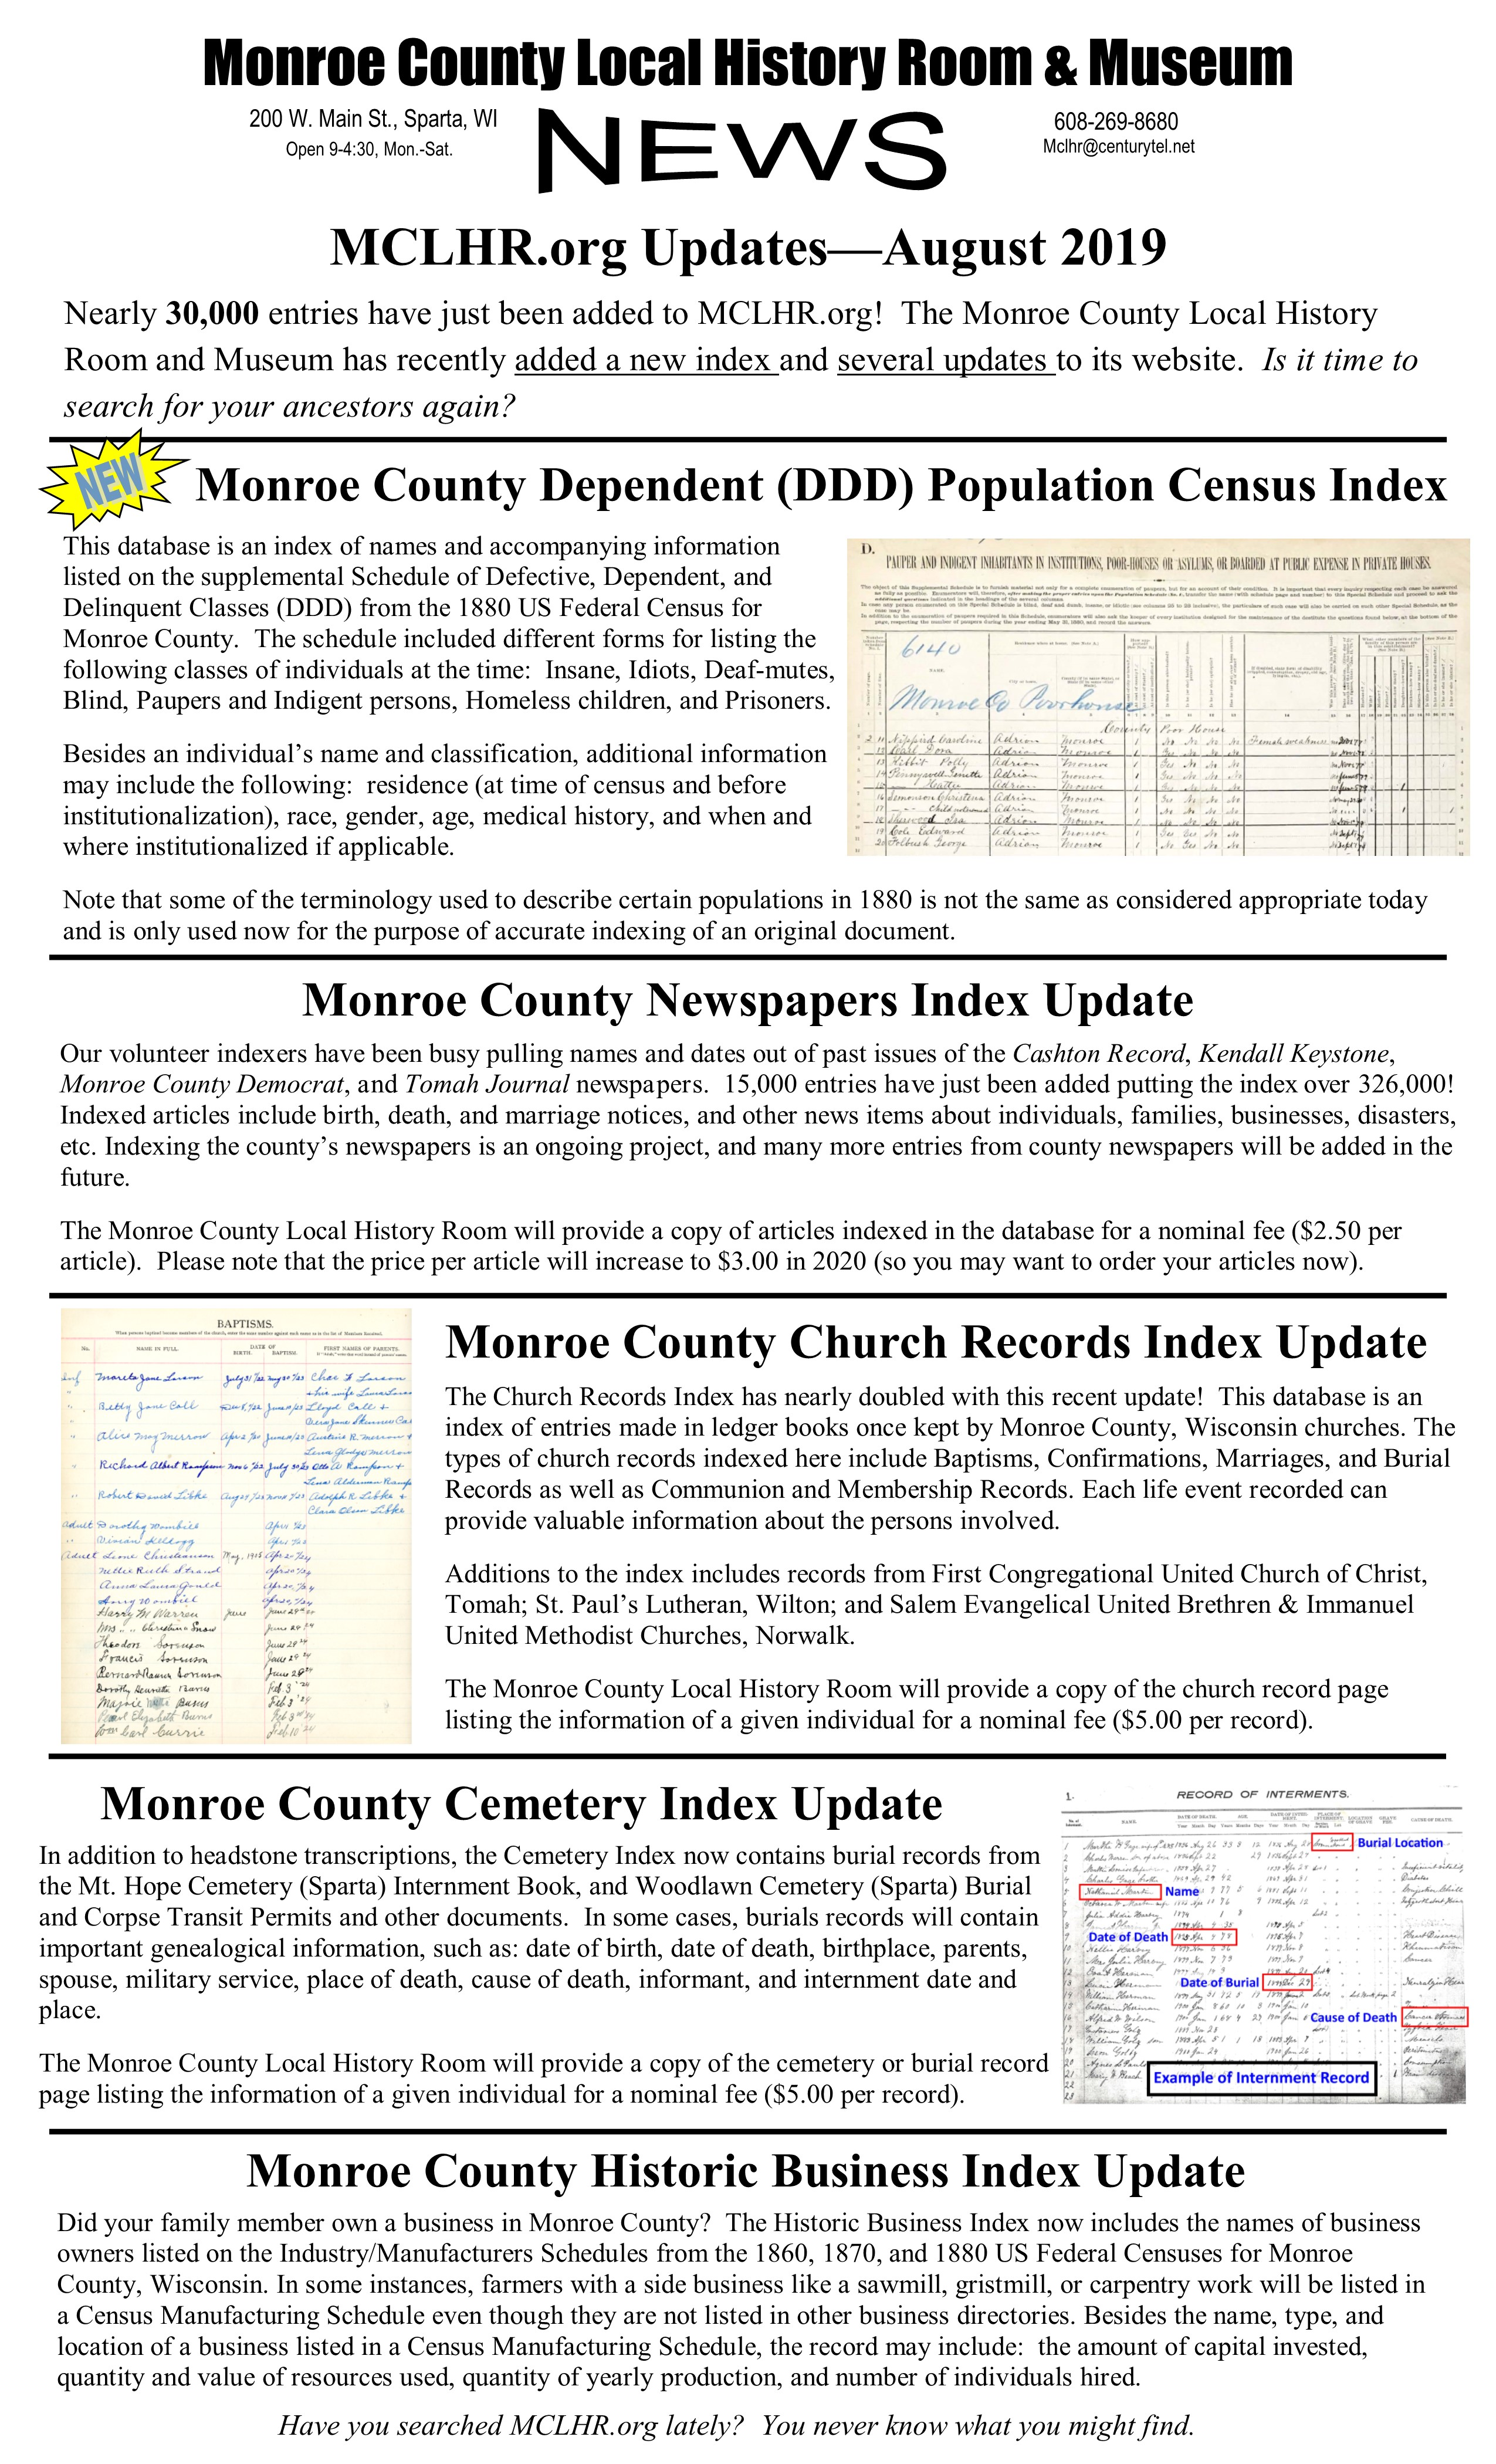 Monroe County Local History Museum: The best website to